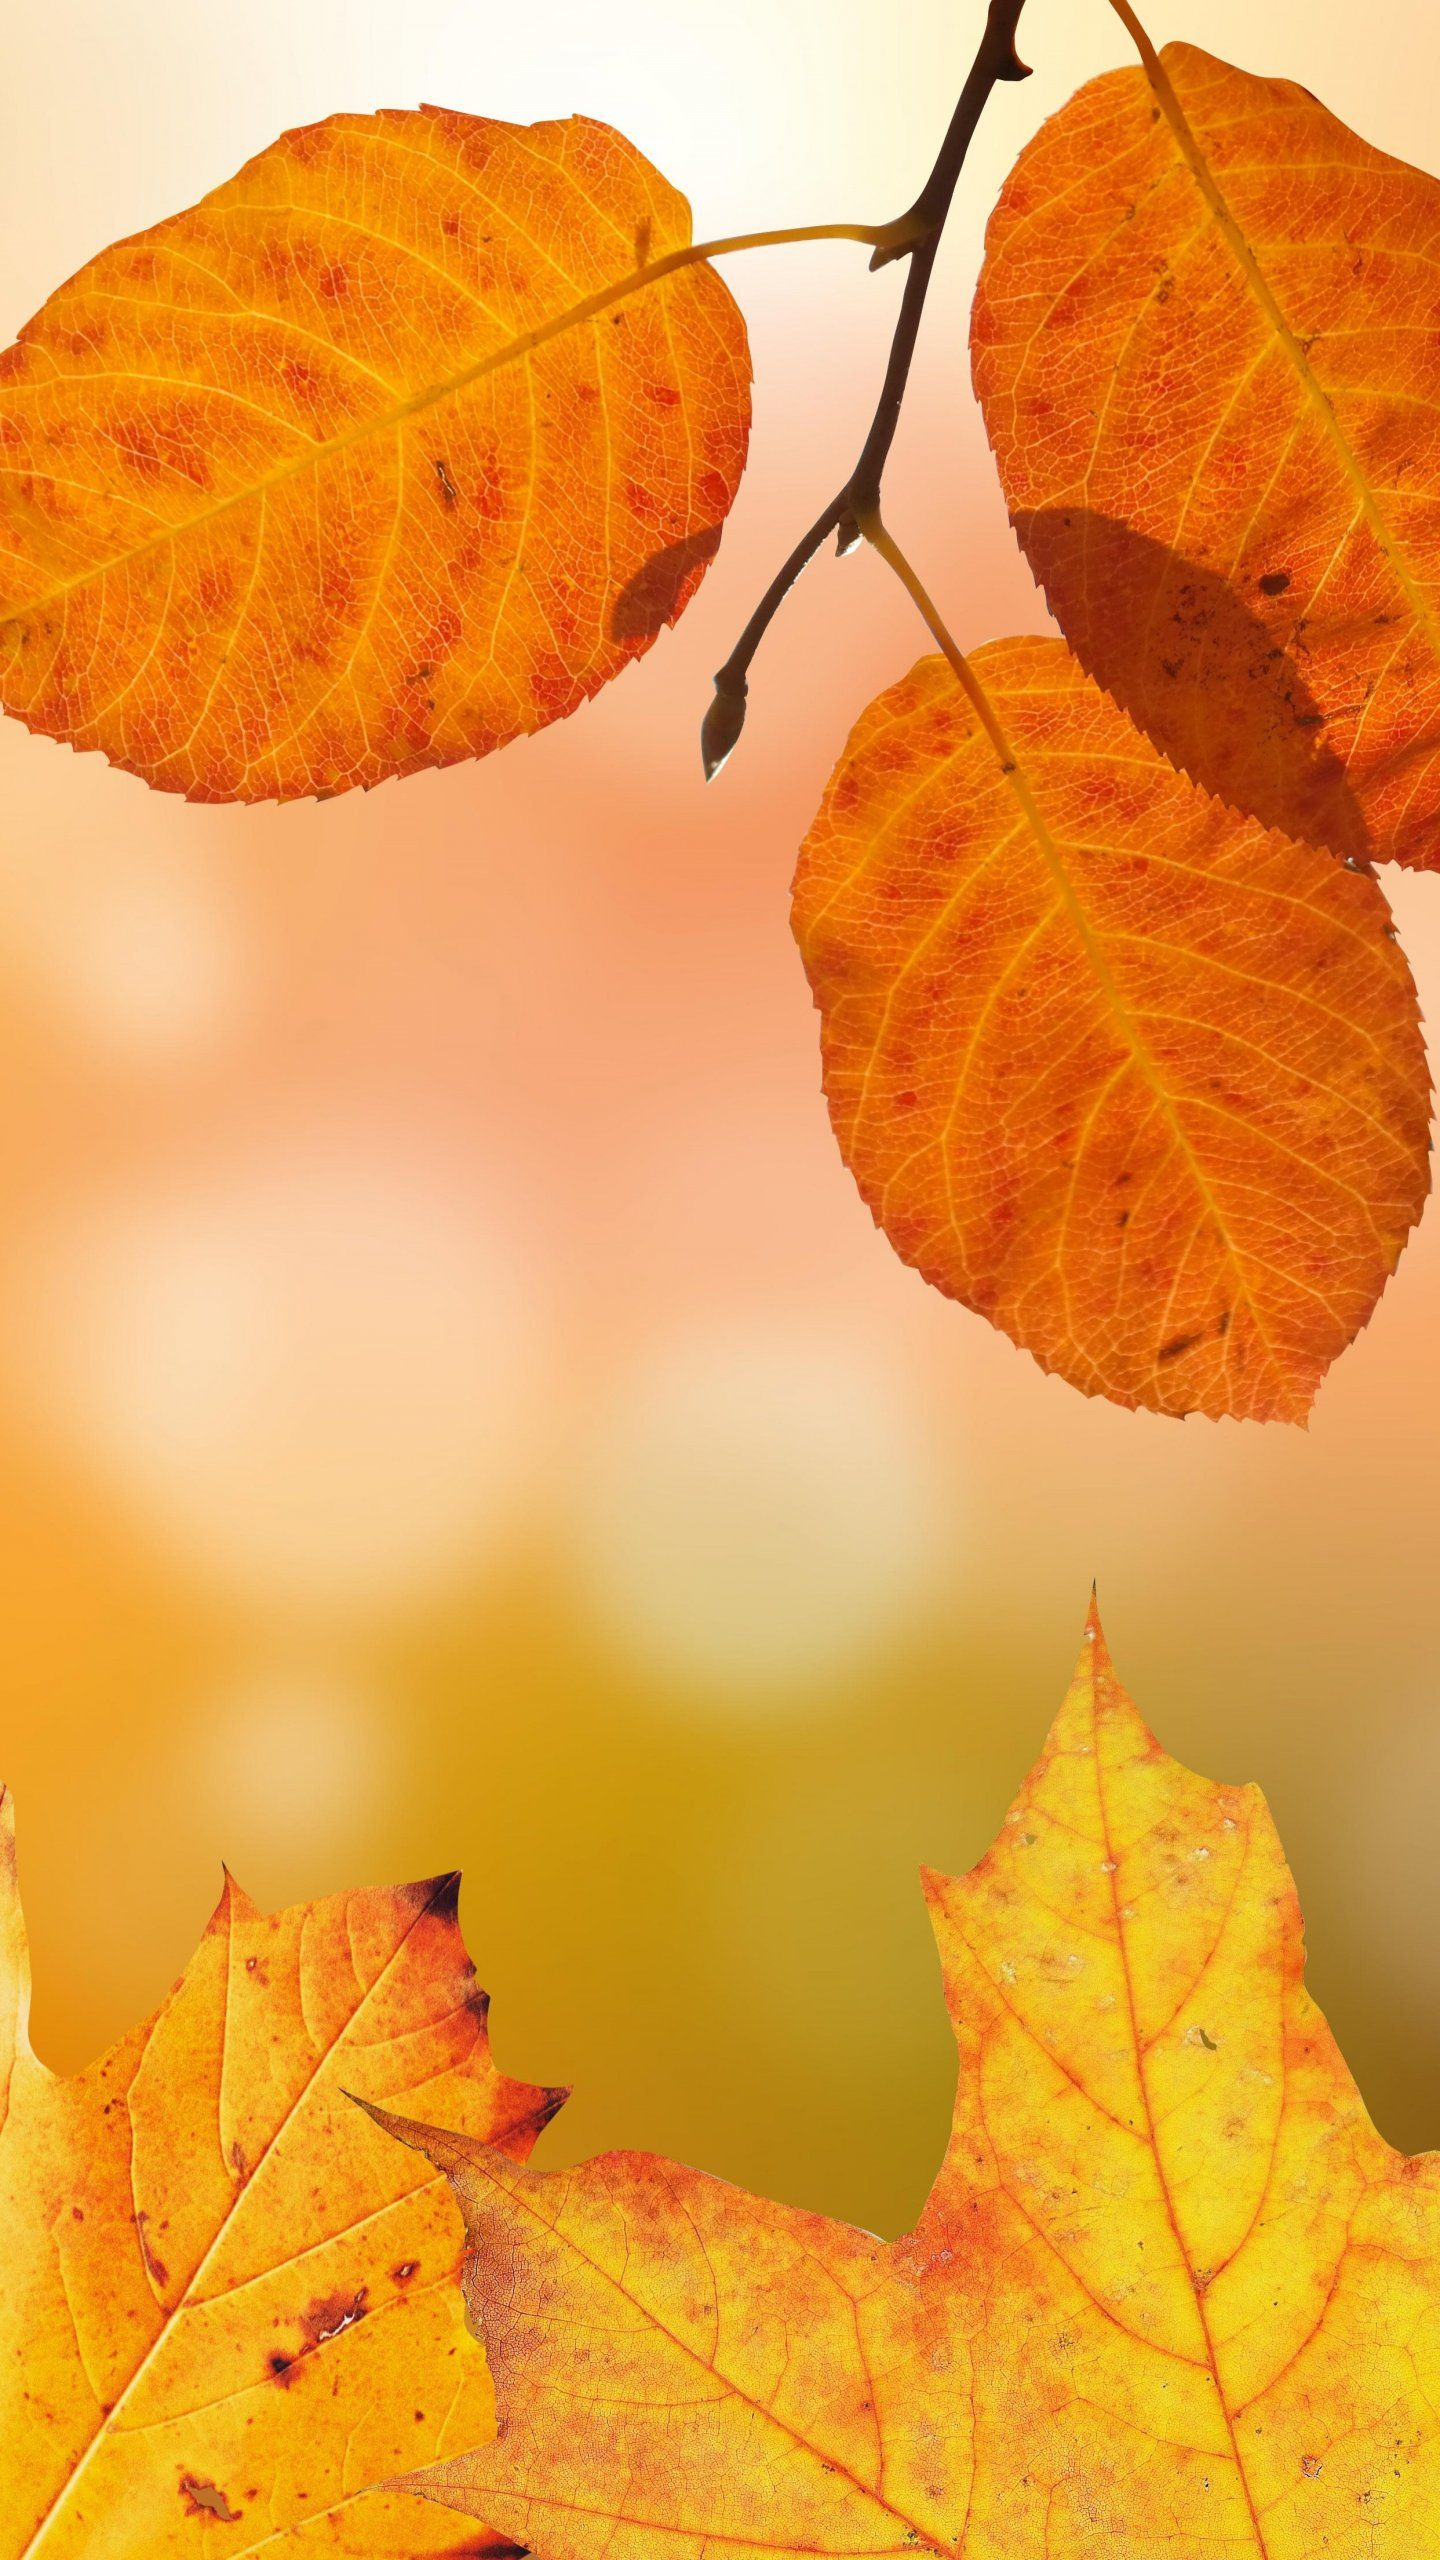 Autumn Leaves Wallpaper Iphone Android Desktop Backgrounds Leaves Wallpaper Iphone Autumn Leaves Wallpaper Minimal Wallpaper